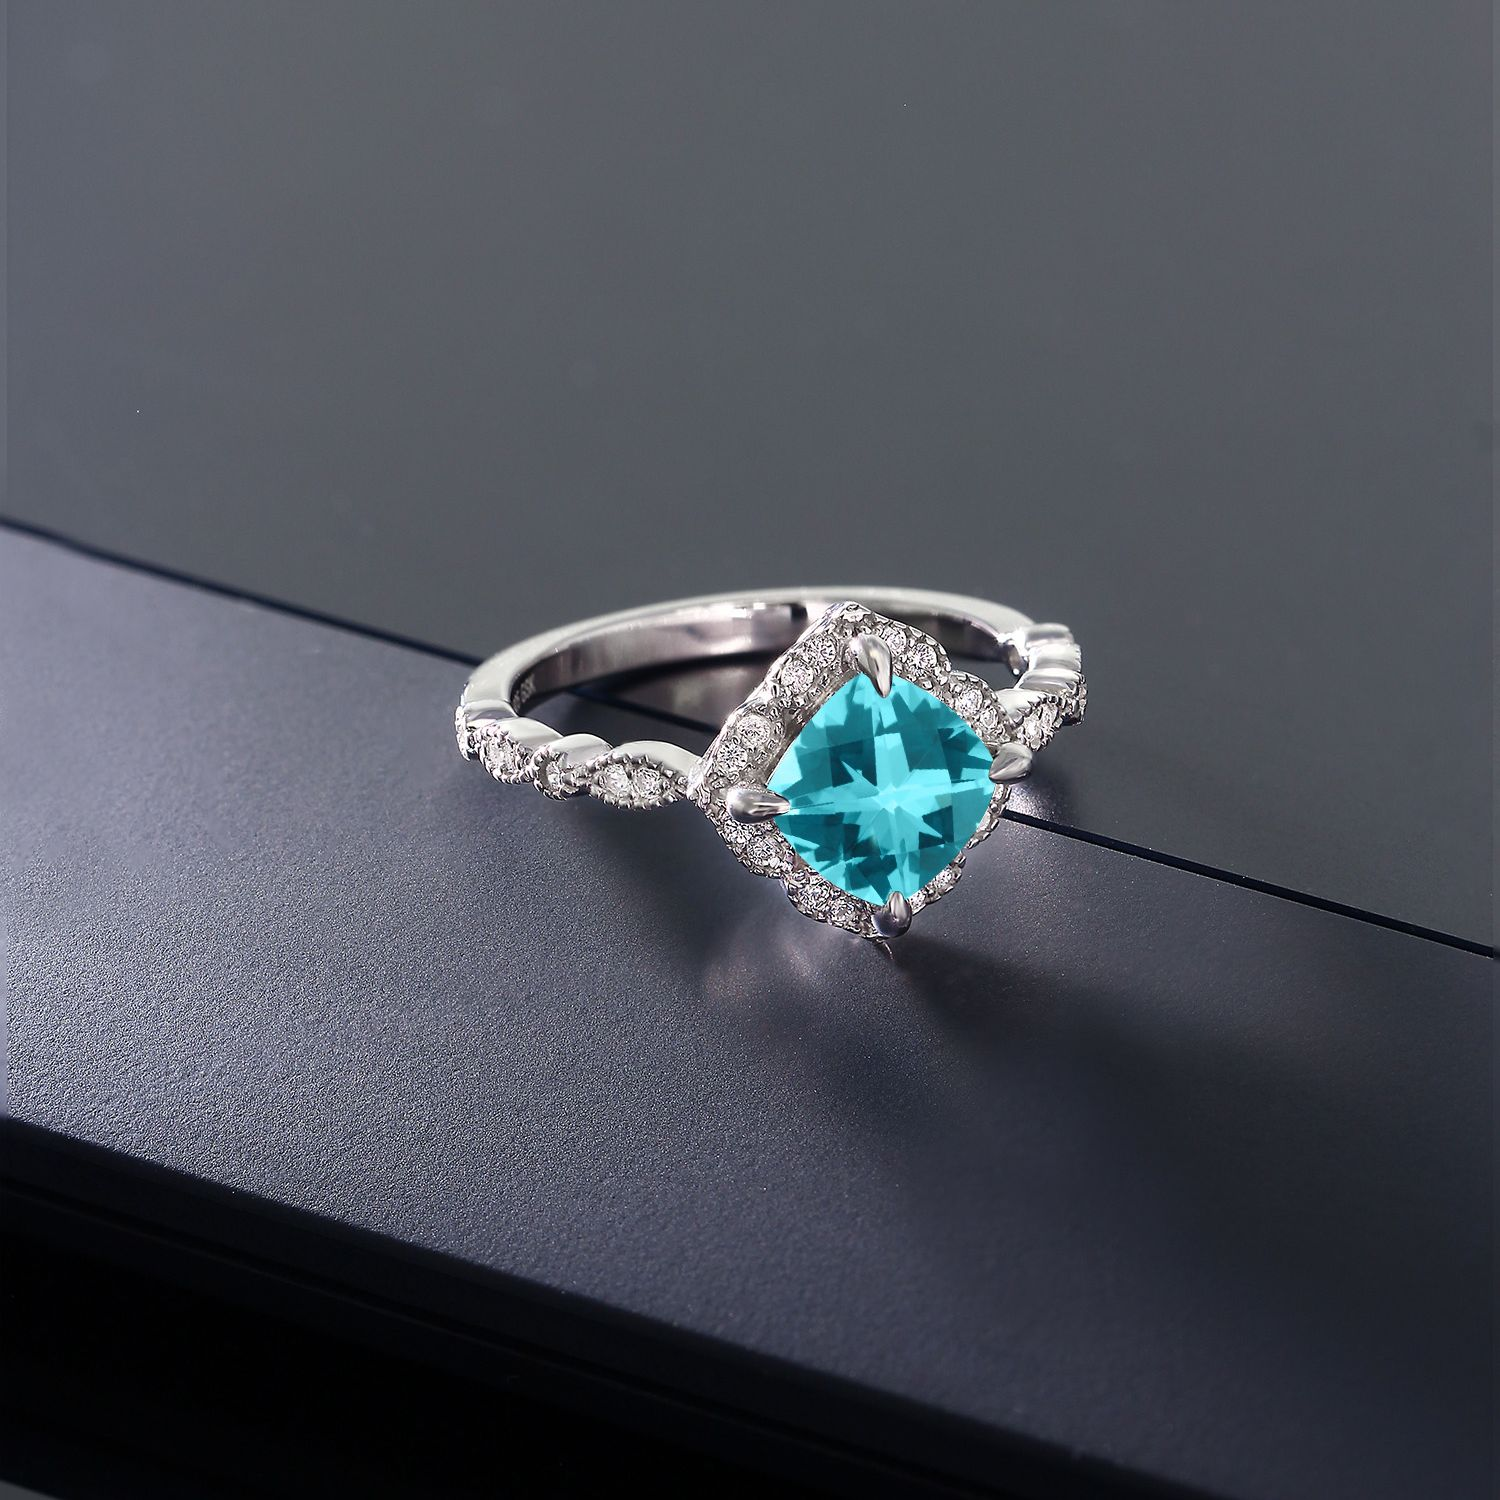 907f668e8 925 Sterling Silver Solitaire Ring Set With Paraiba Topaz from Swarovski